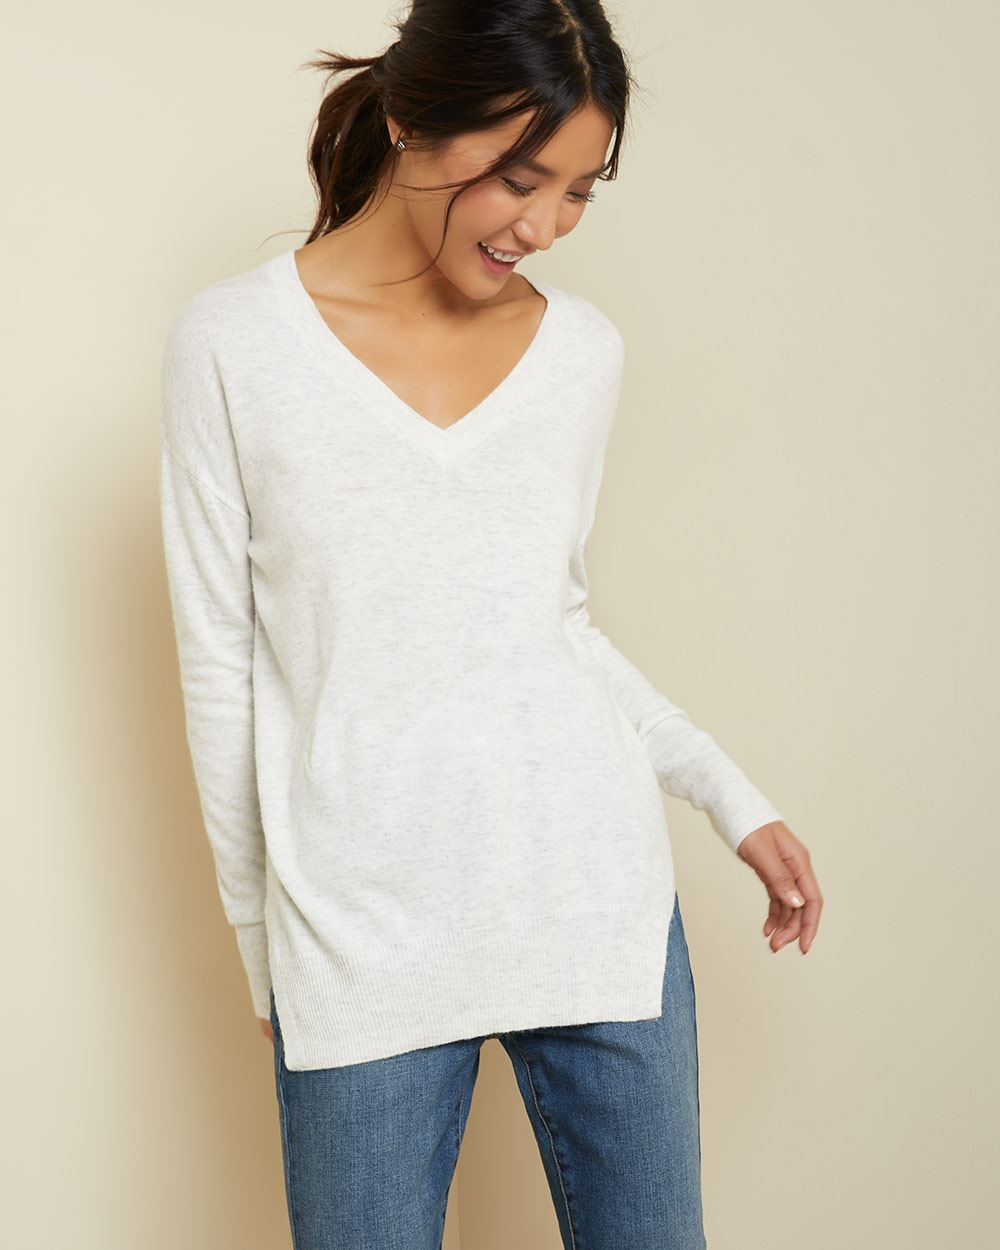 Cashmere-like V-neck tunic Sweater